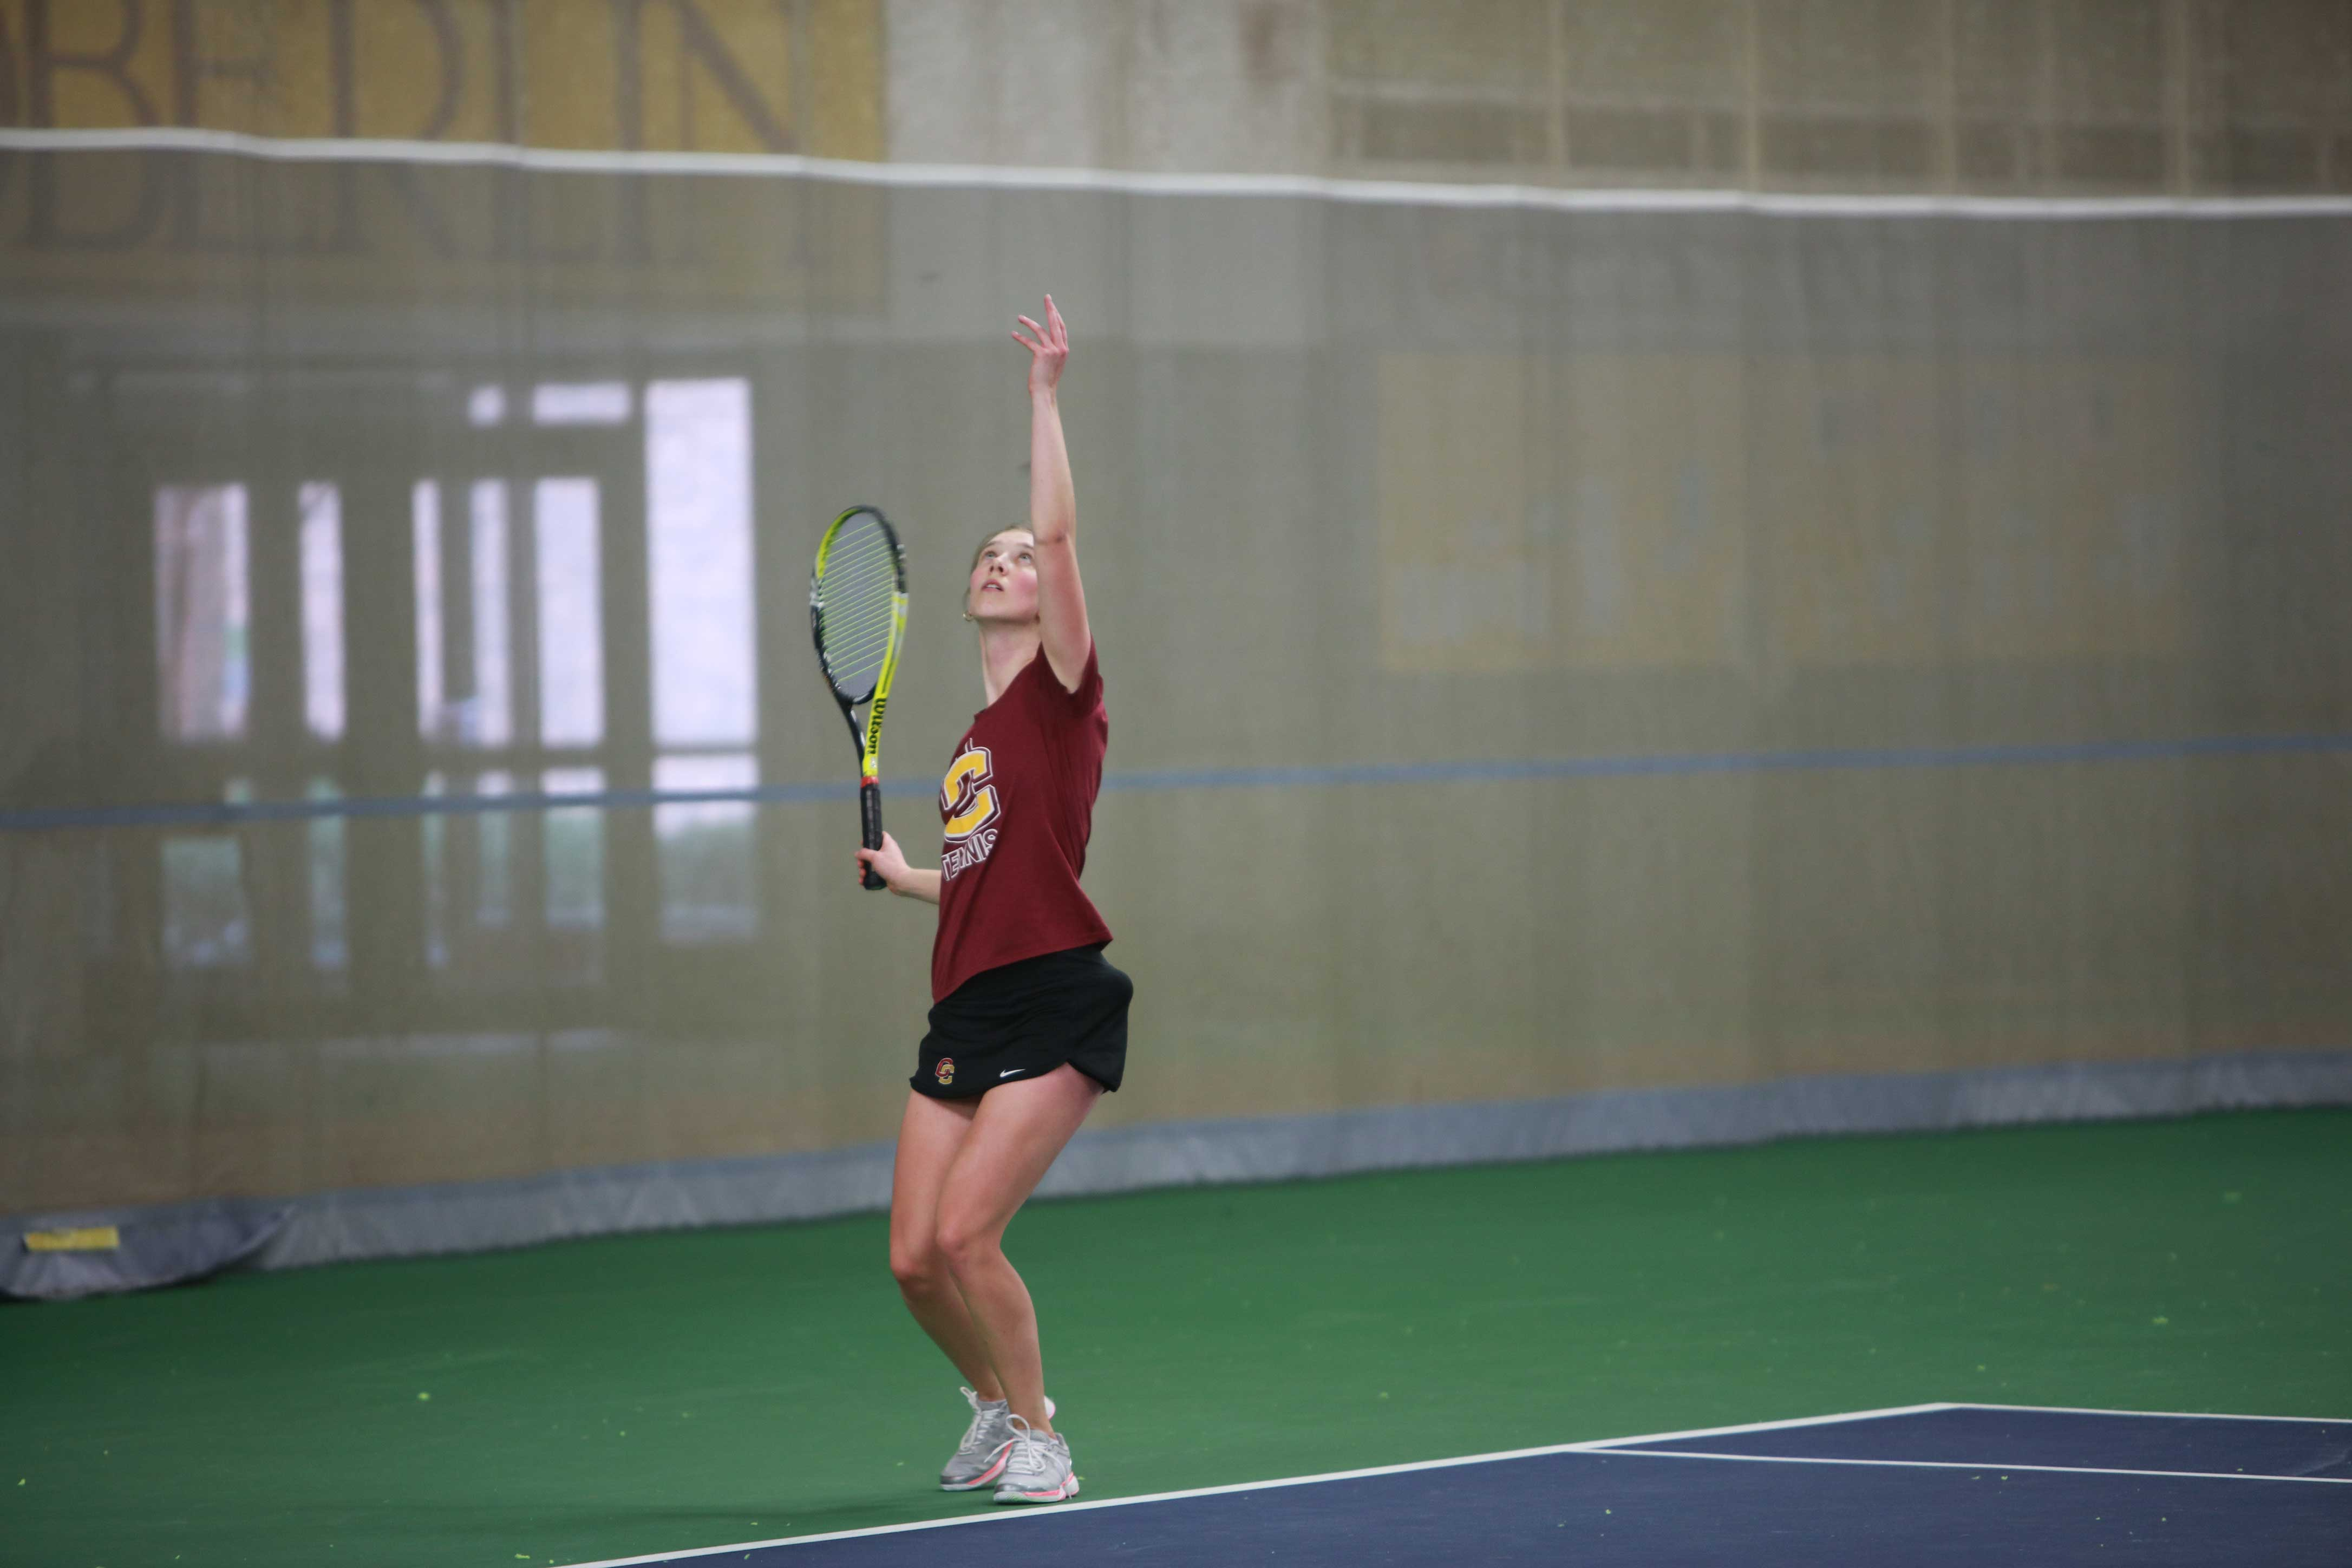 Senior captain Olivia Hay strikes trophy pose in the squad's match against University of Rochester on April 1. The Yeowomen will travel to Gambier, Ohio, to take on conference rival Kenyon College tomorrow.